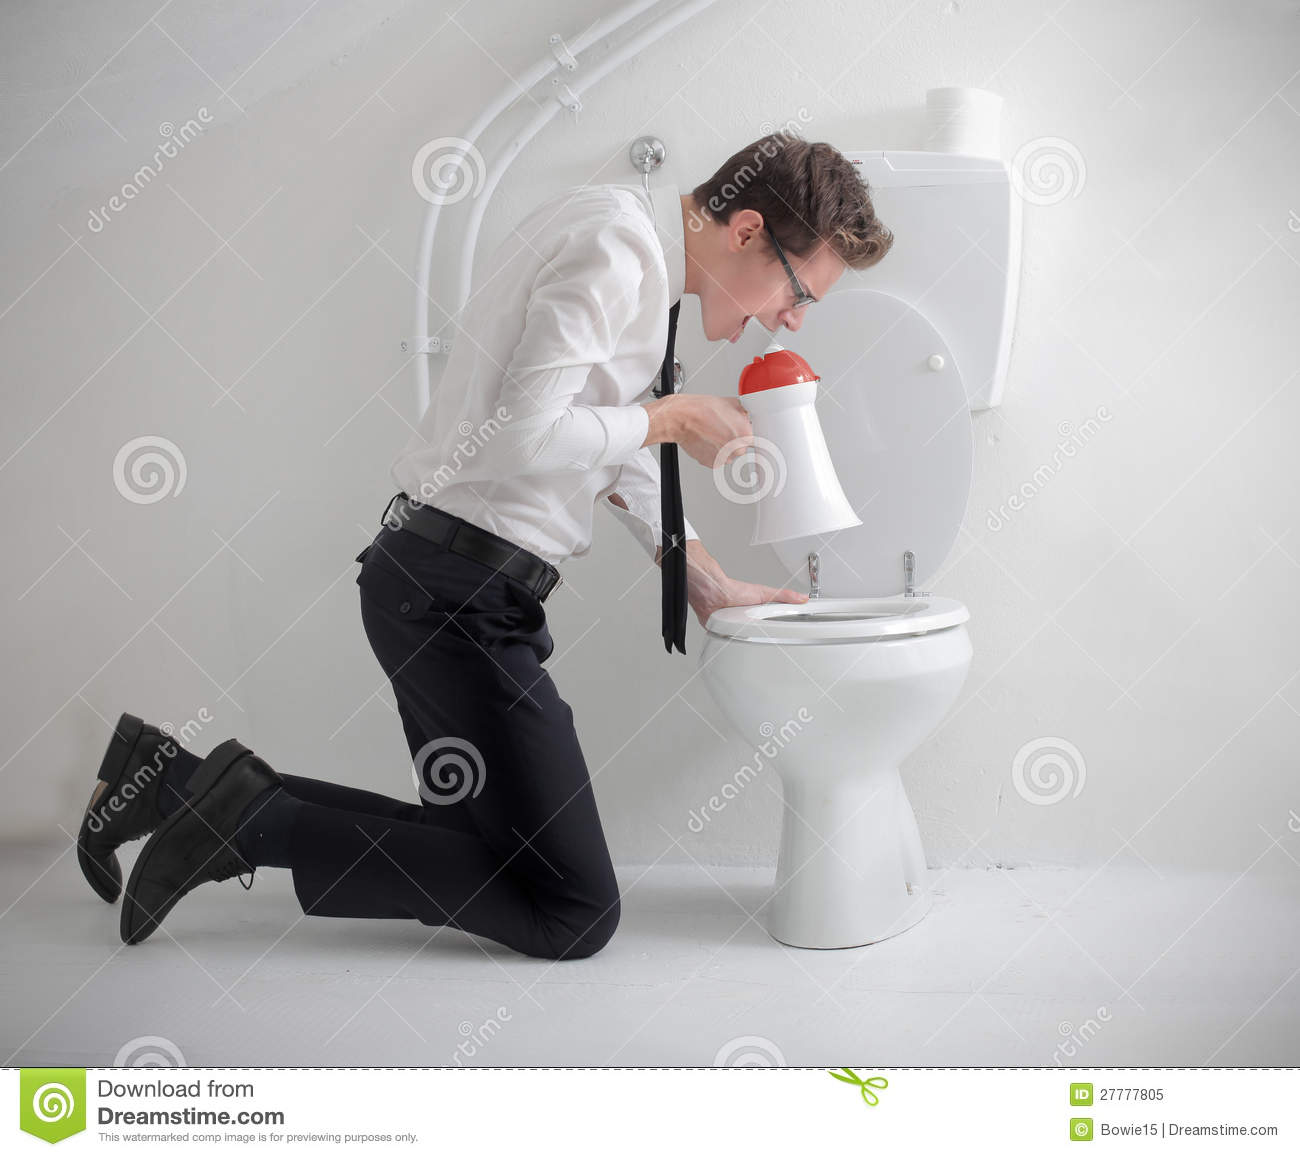 Screaming Into The Toilet Royalty Free Stock Photo Image